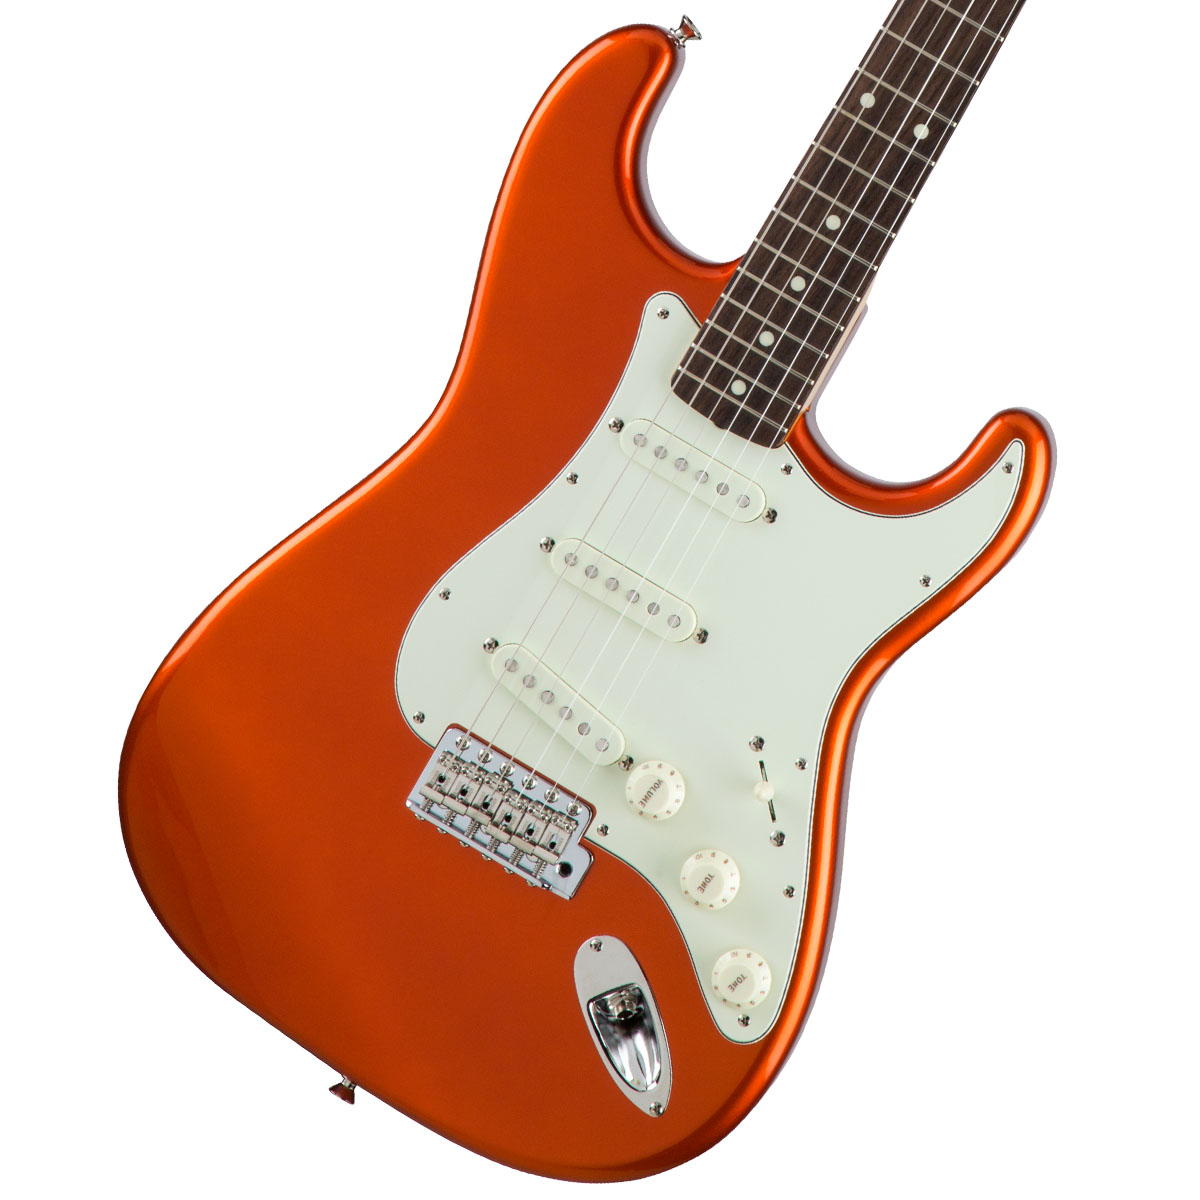 Fender / Made in Japan Traditional 60s Stratocaster Rosewood Fingerboard Candy Tangerine 《カスタムショップのお手入れ用品を進呈/+671038200》【YRK】